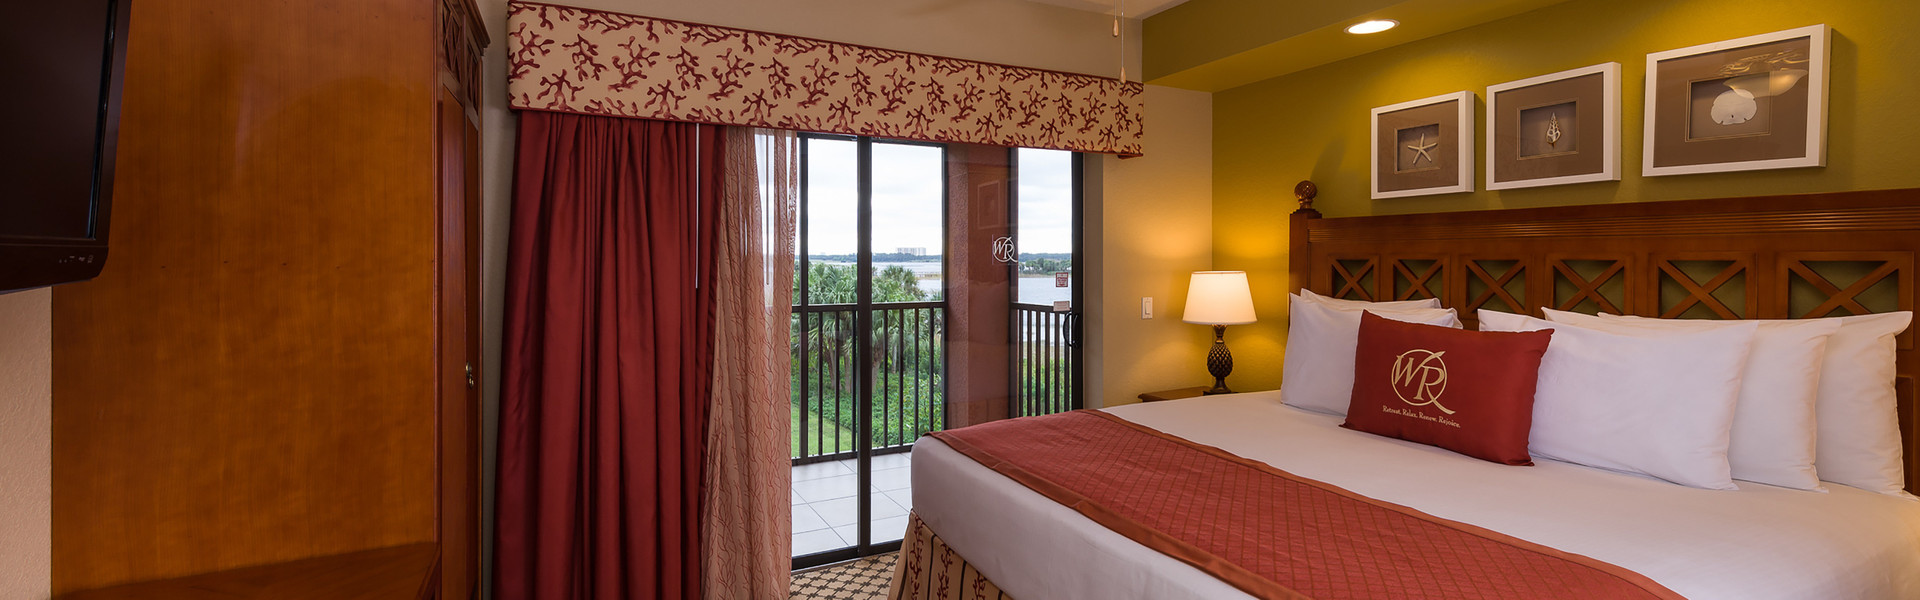 Luxury accommodations in 4 bedroom suites in Orlando near theme parks and attractions | Westgate Lakes Resort & Spa